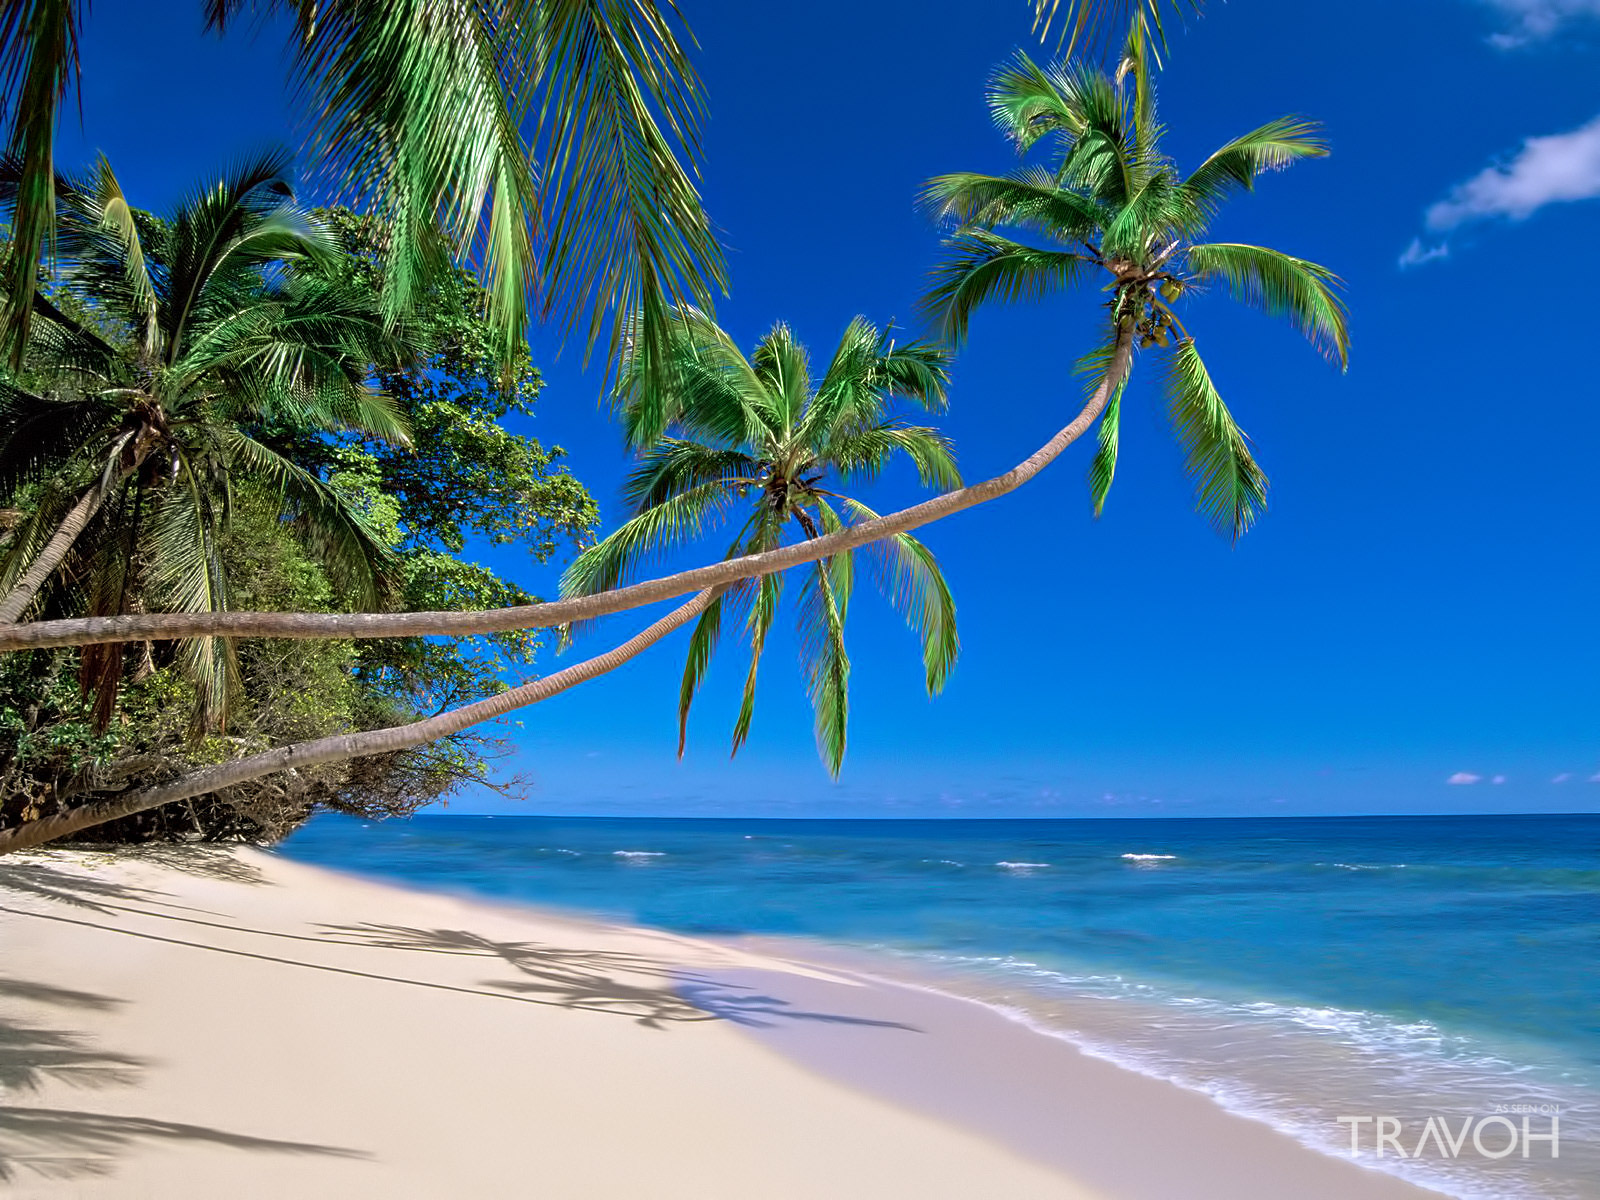 Matana Beach Resort - Exploring 10 of the Top Beach Locations on the Islands of Fiji